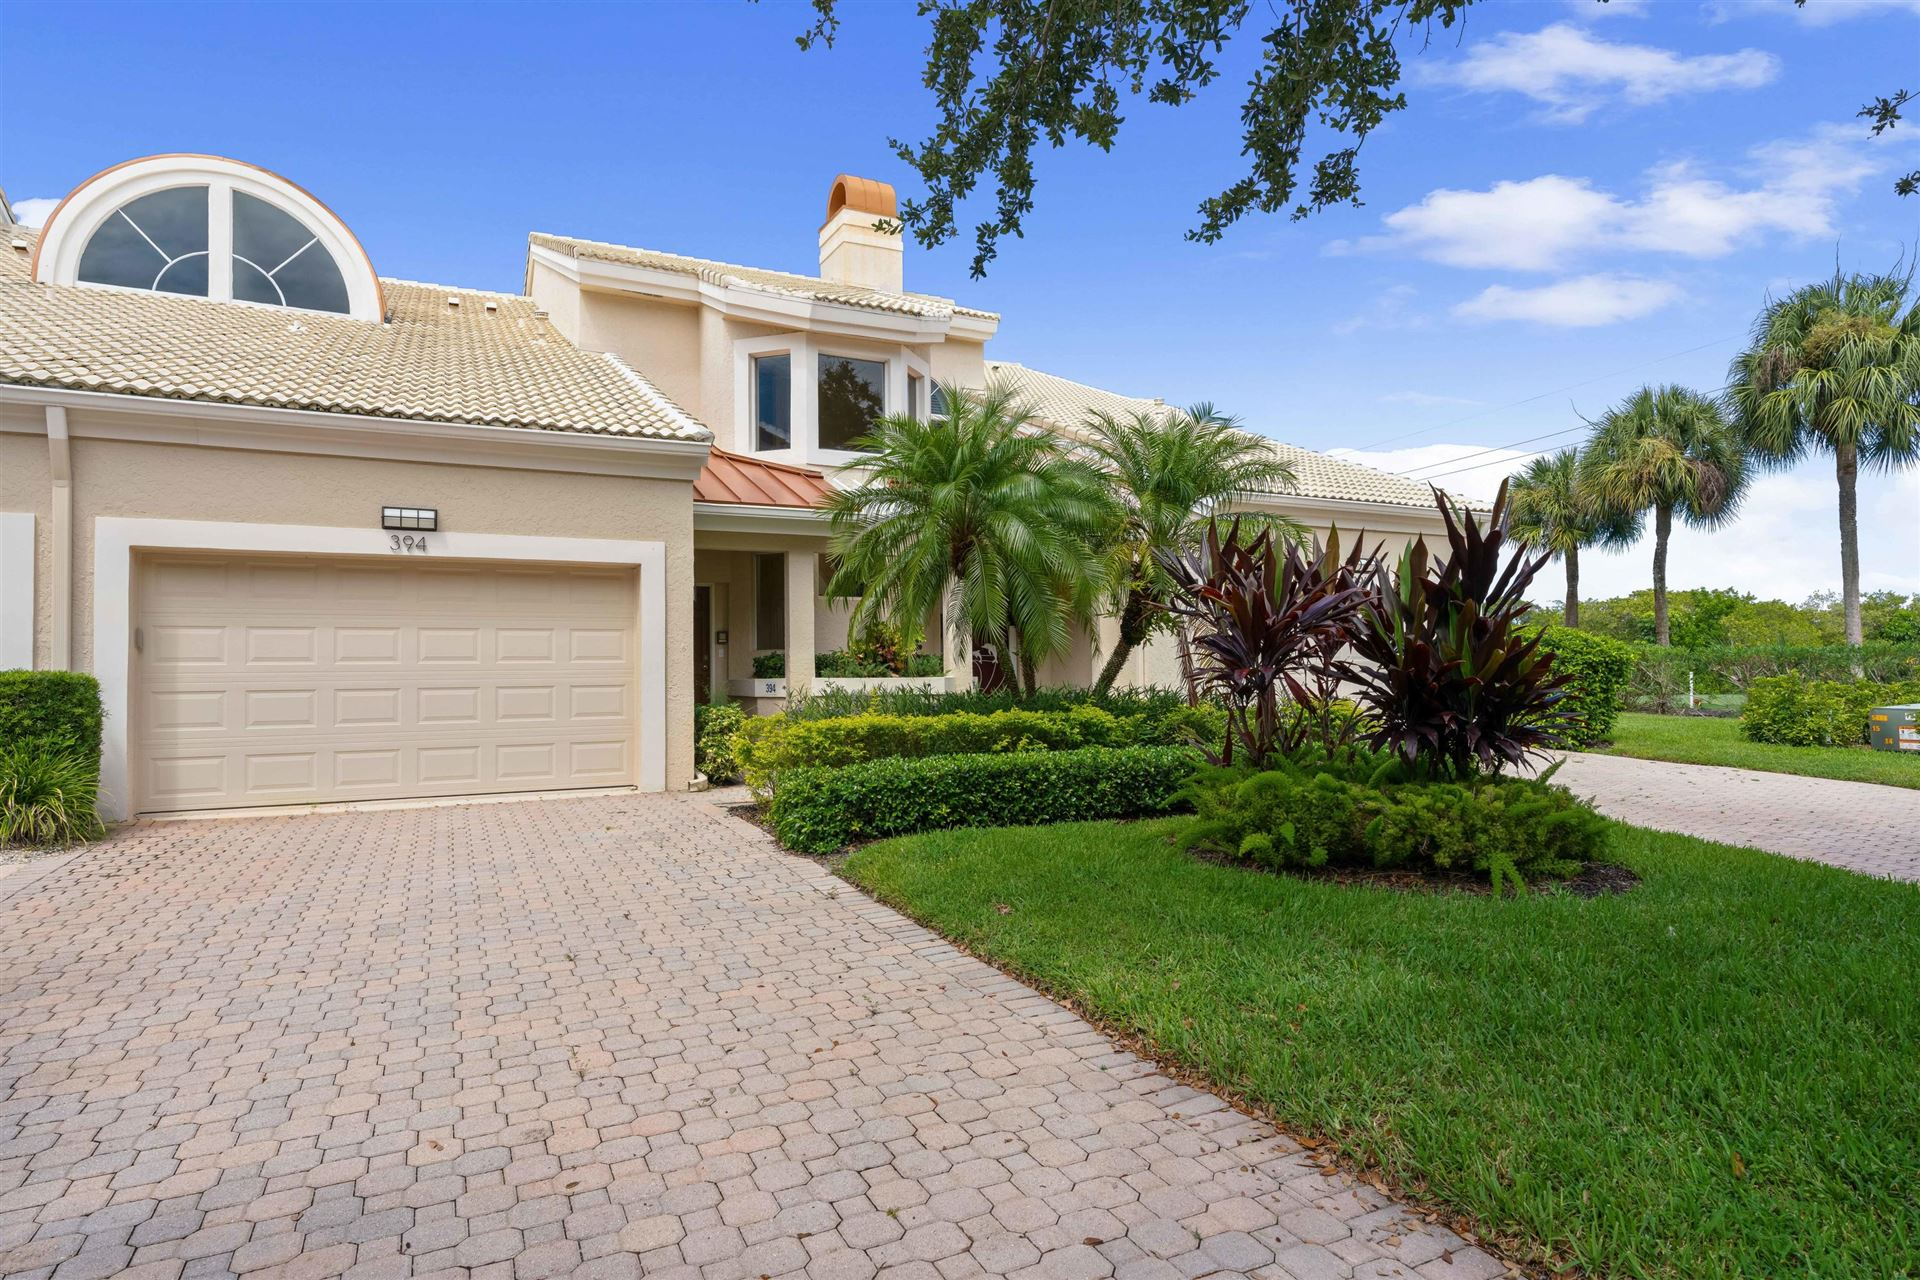 Photo of 394 Spyglass Way, Jupiter, FL 33477 (MLS # RX-10654231)